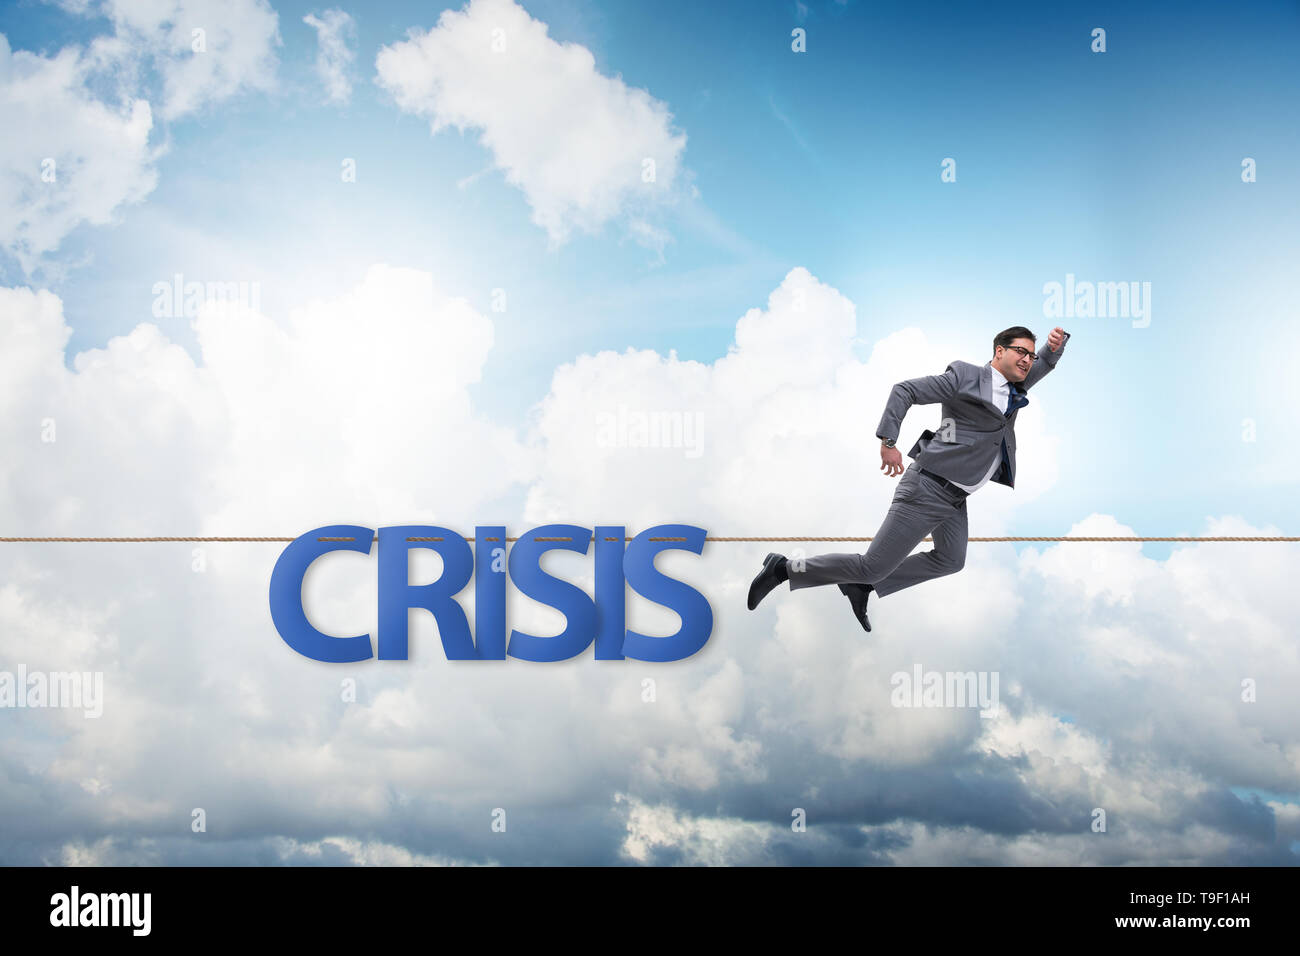 Crisis concept with businessman walking on tight rope - Stock Image